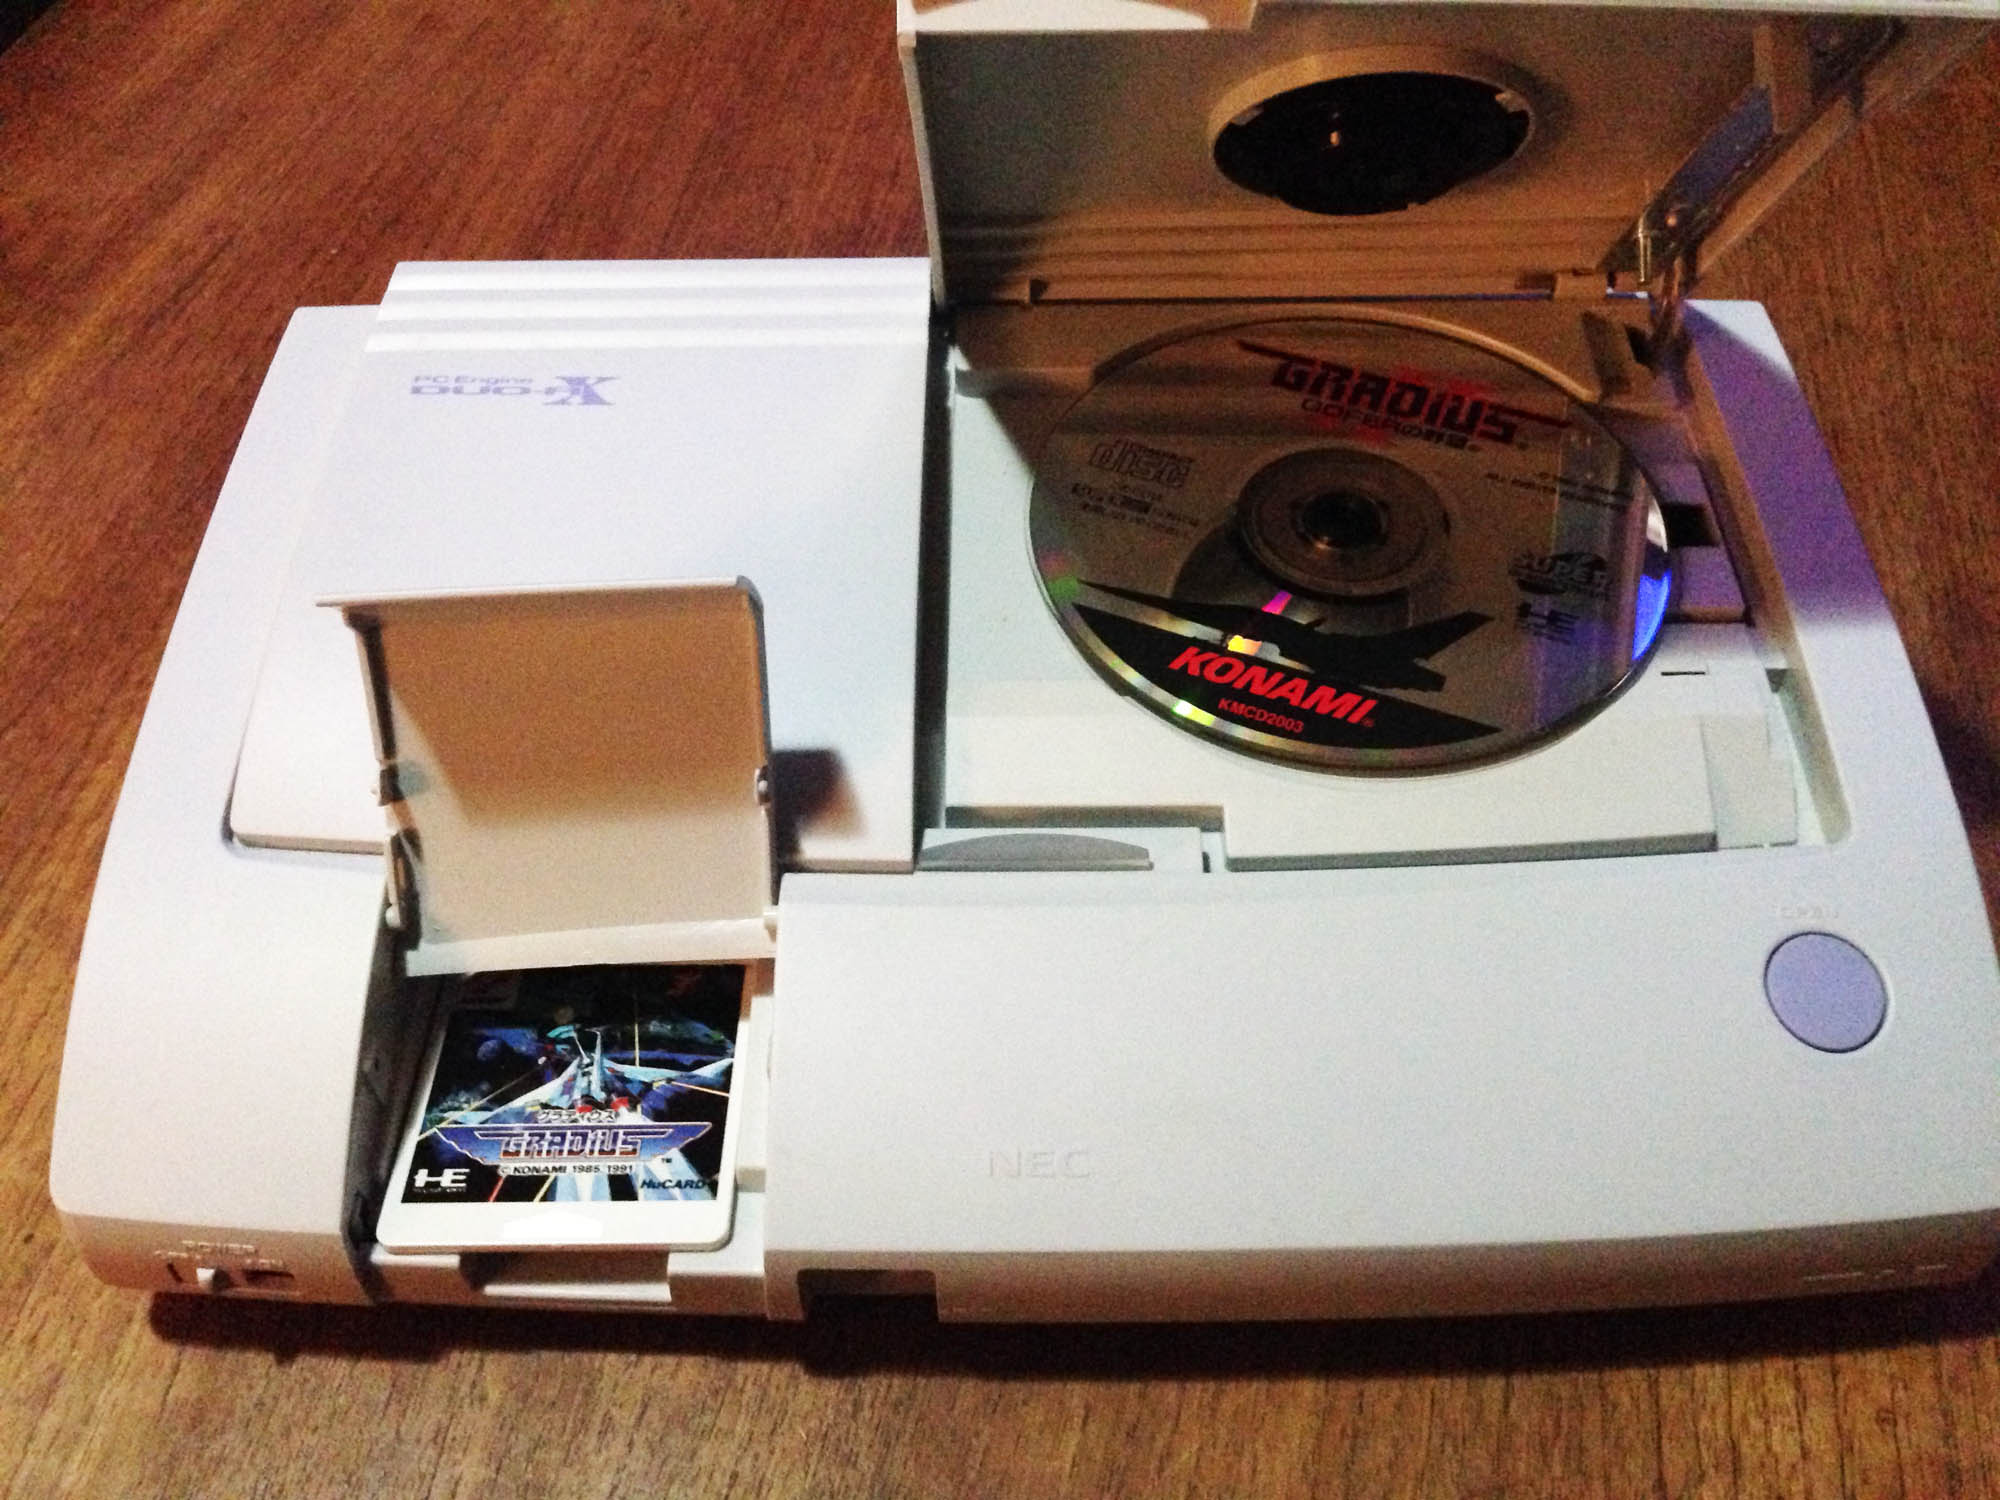 The NEC PC Engine – The Original Hardcore Machine – Nintendo